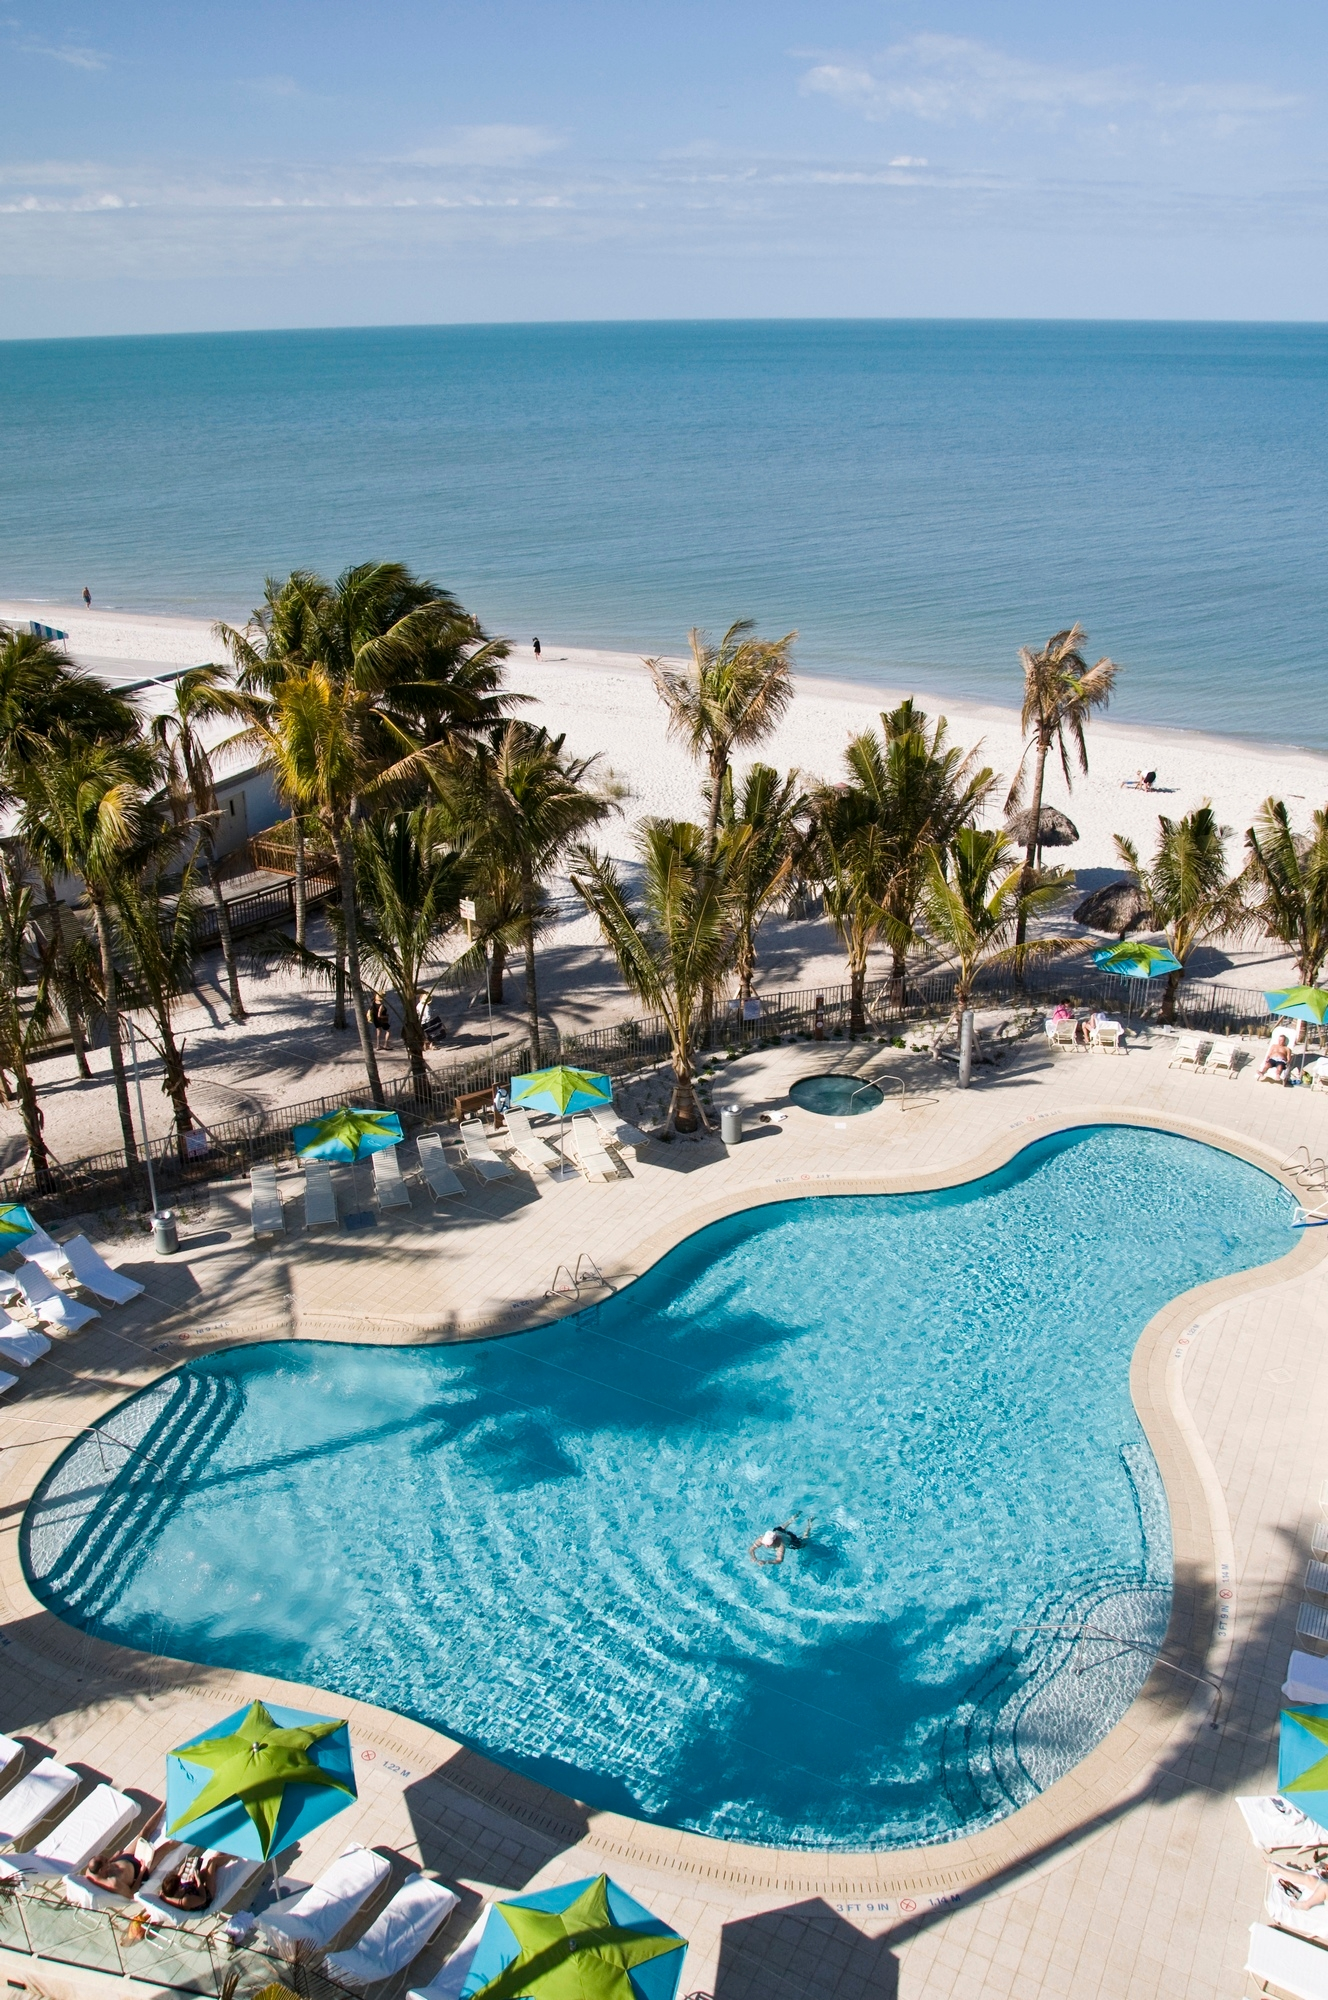 8 Best Florida Resorts With All Inclusive Packages: Naples Beach Hotel & Golf Club 851 Gulf Shore Blvd N